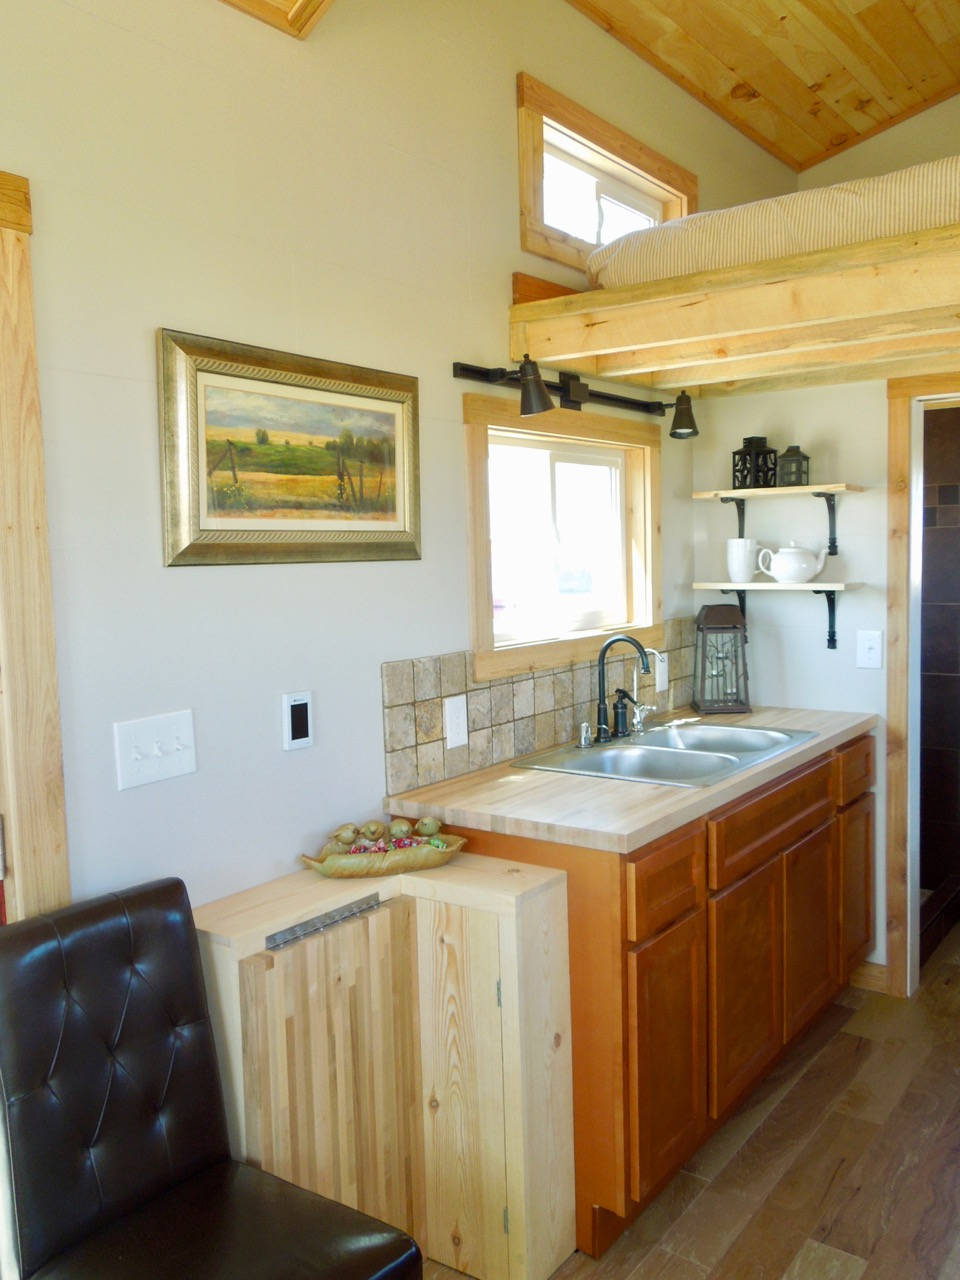 Wheelhouse-tiny-homes-35.jpg